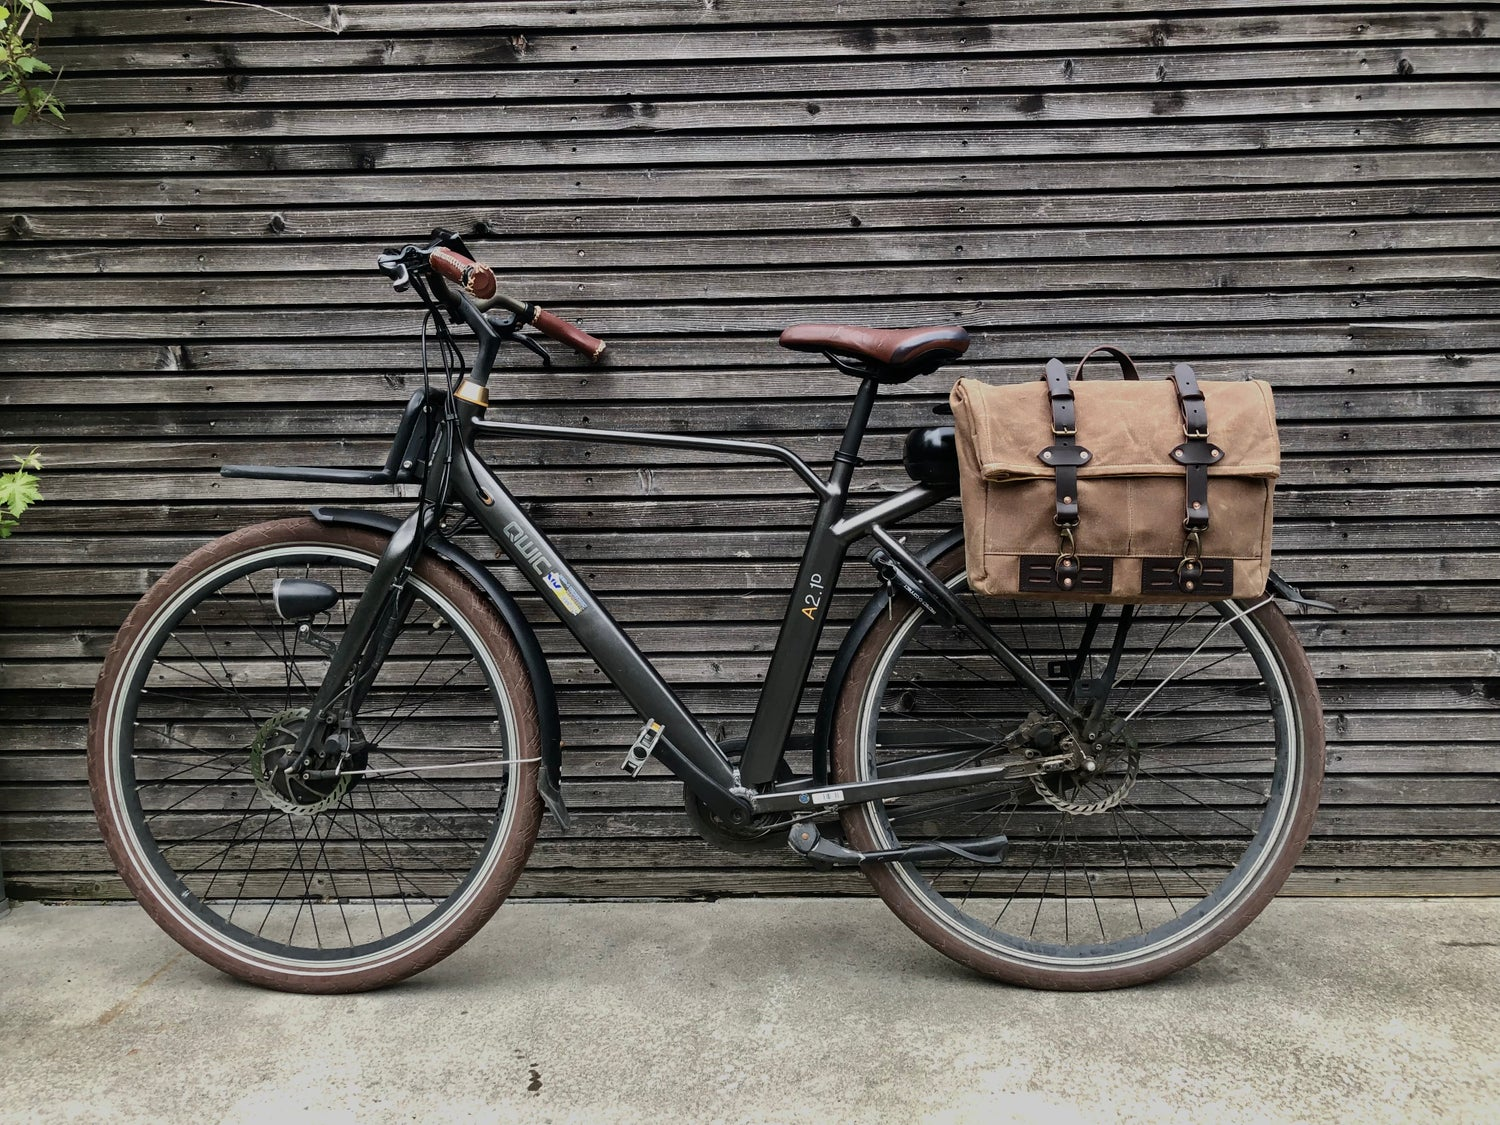 Image of Waxed canvas saddlebag for Super73 convertible into messenger bag Bicycle bag in waxed canvas Bike a